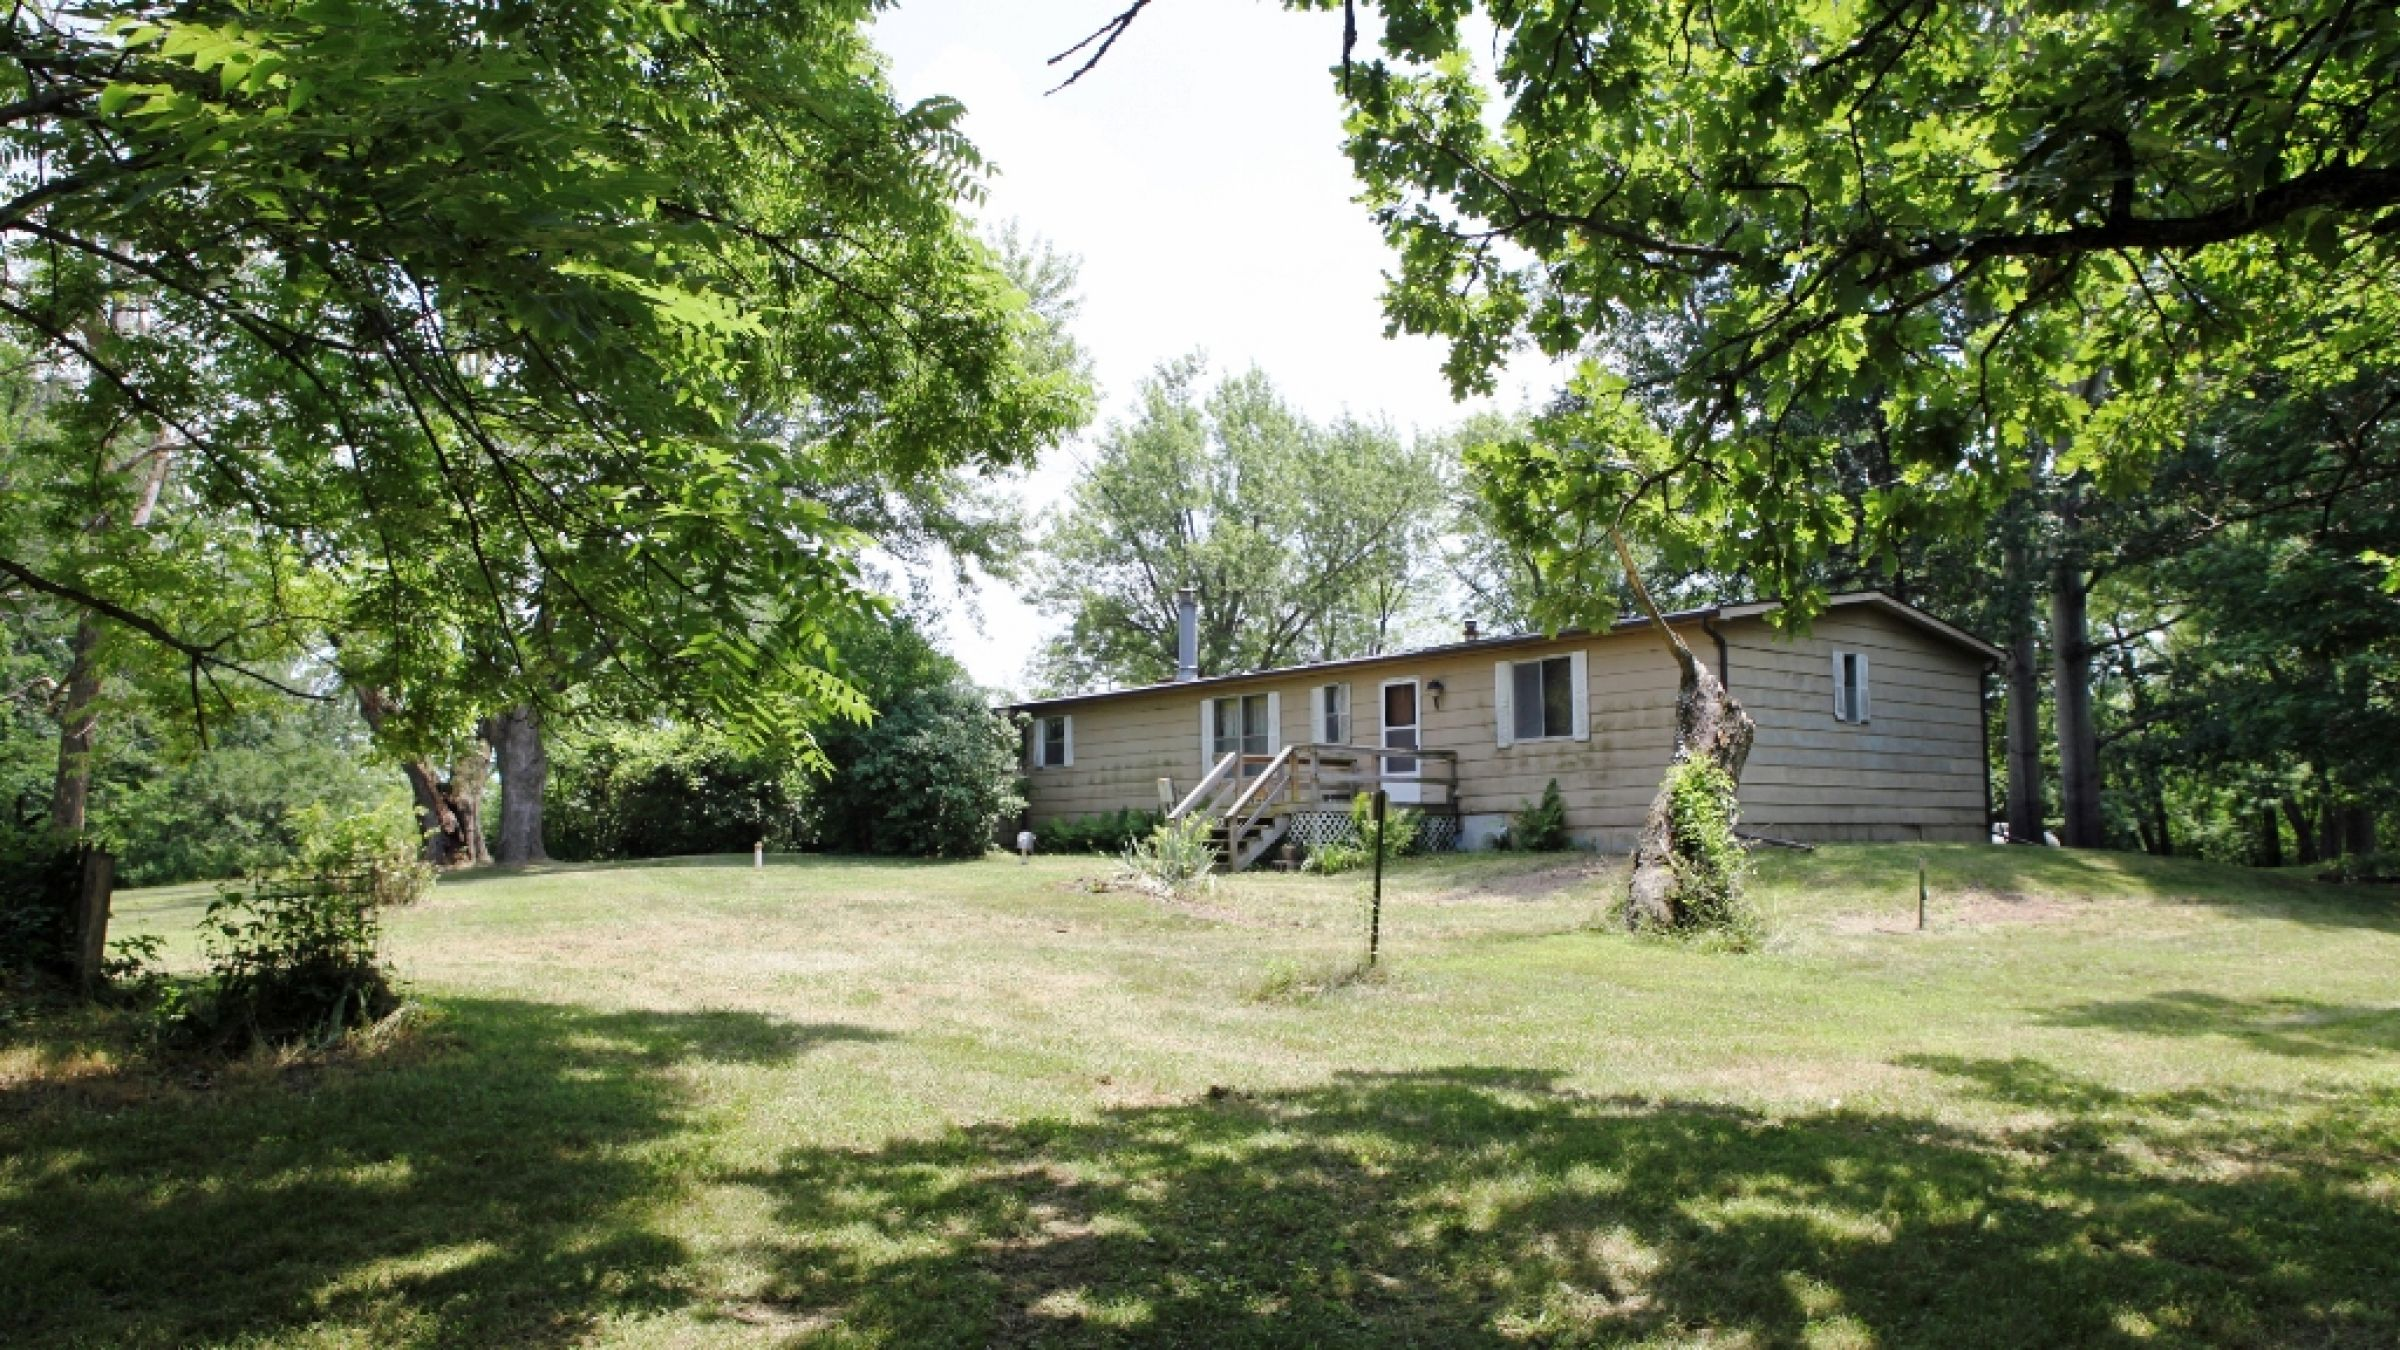 residential-lucas-county-iowa-2-acres-listing-number-15392-3-2021-03-03-215618.JPG